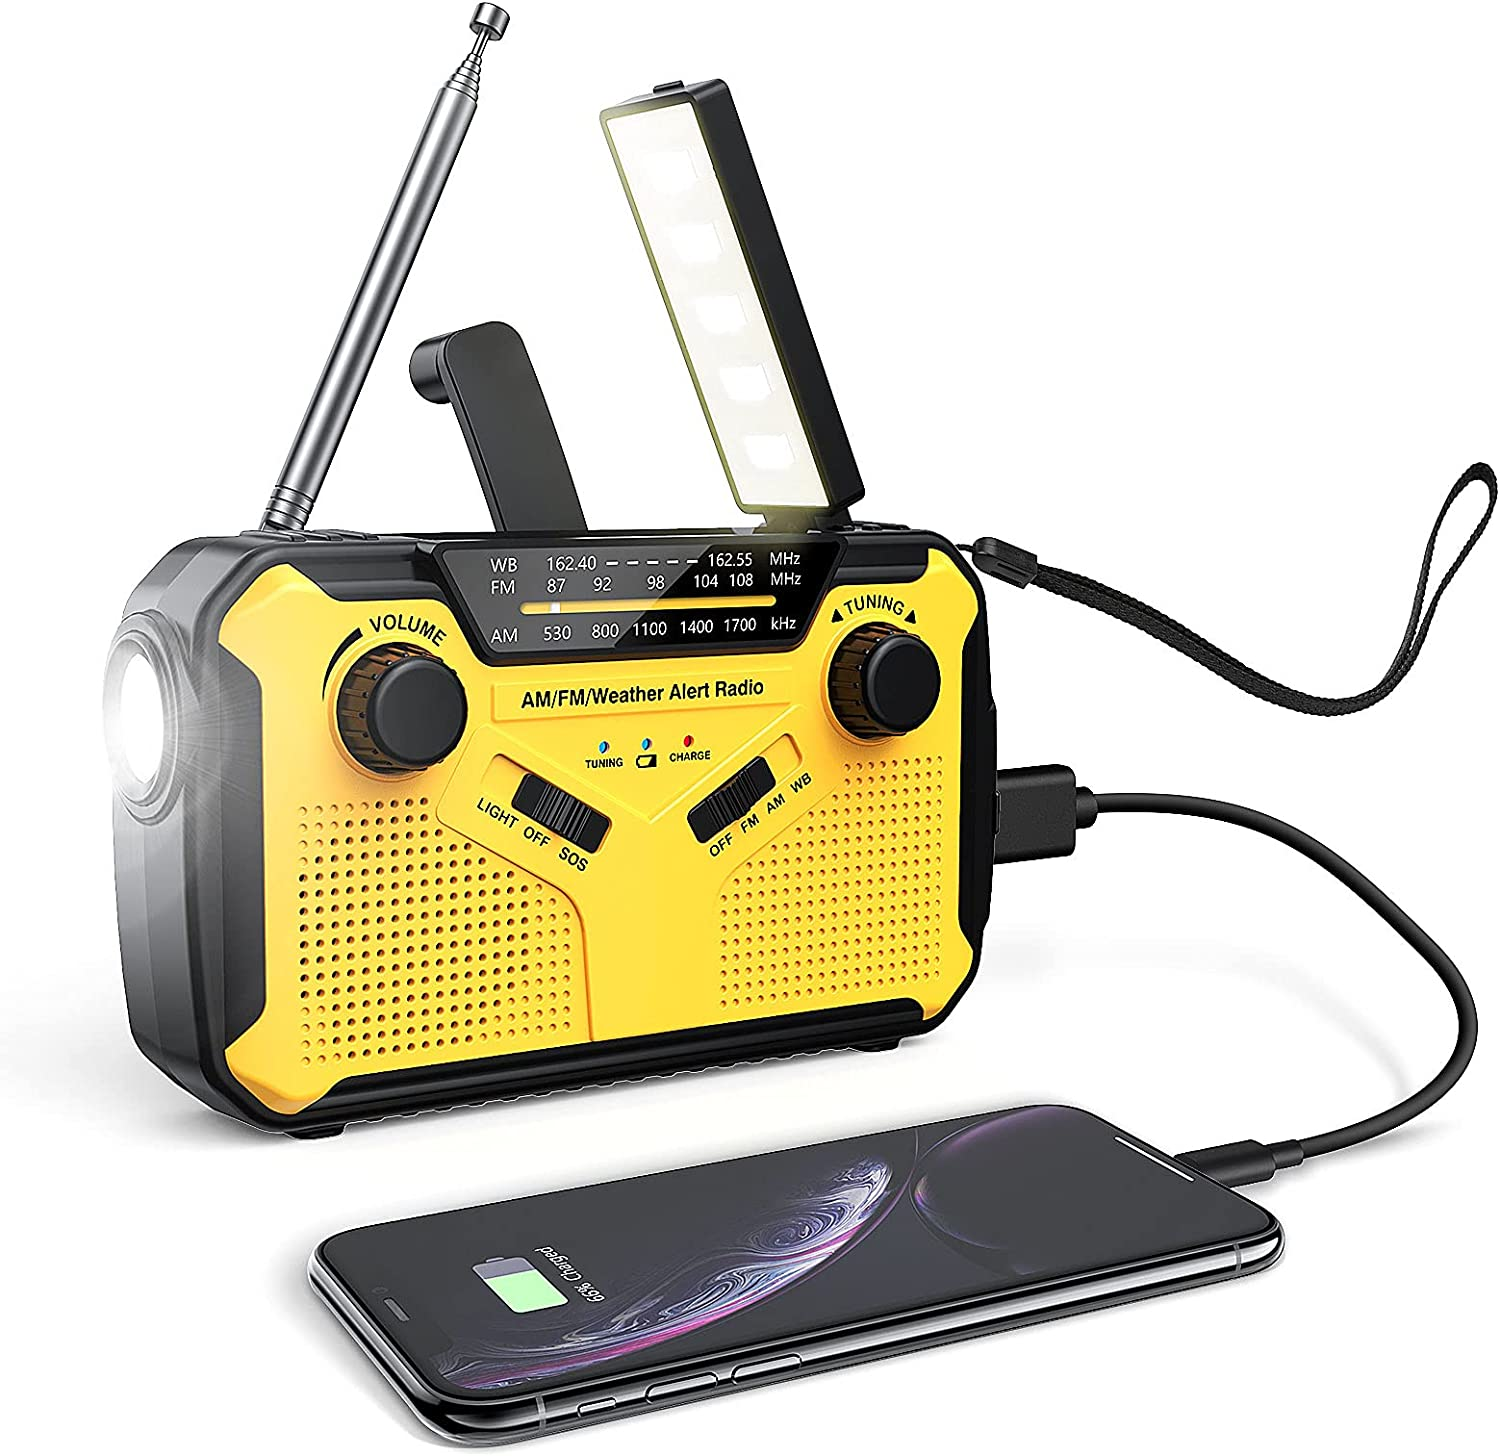 Emergency Radio,Solar Hand Crank Radio with LED Flashlight,Reading Lamp,Portable AM/FM/WB Weather Radio with 3000mAh Power Bank USB Charger and SOS Alarm for Home,Camping,Survival, Household,Outdoor